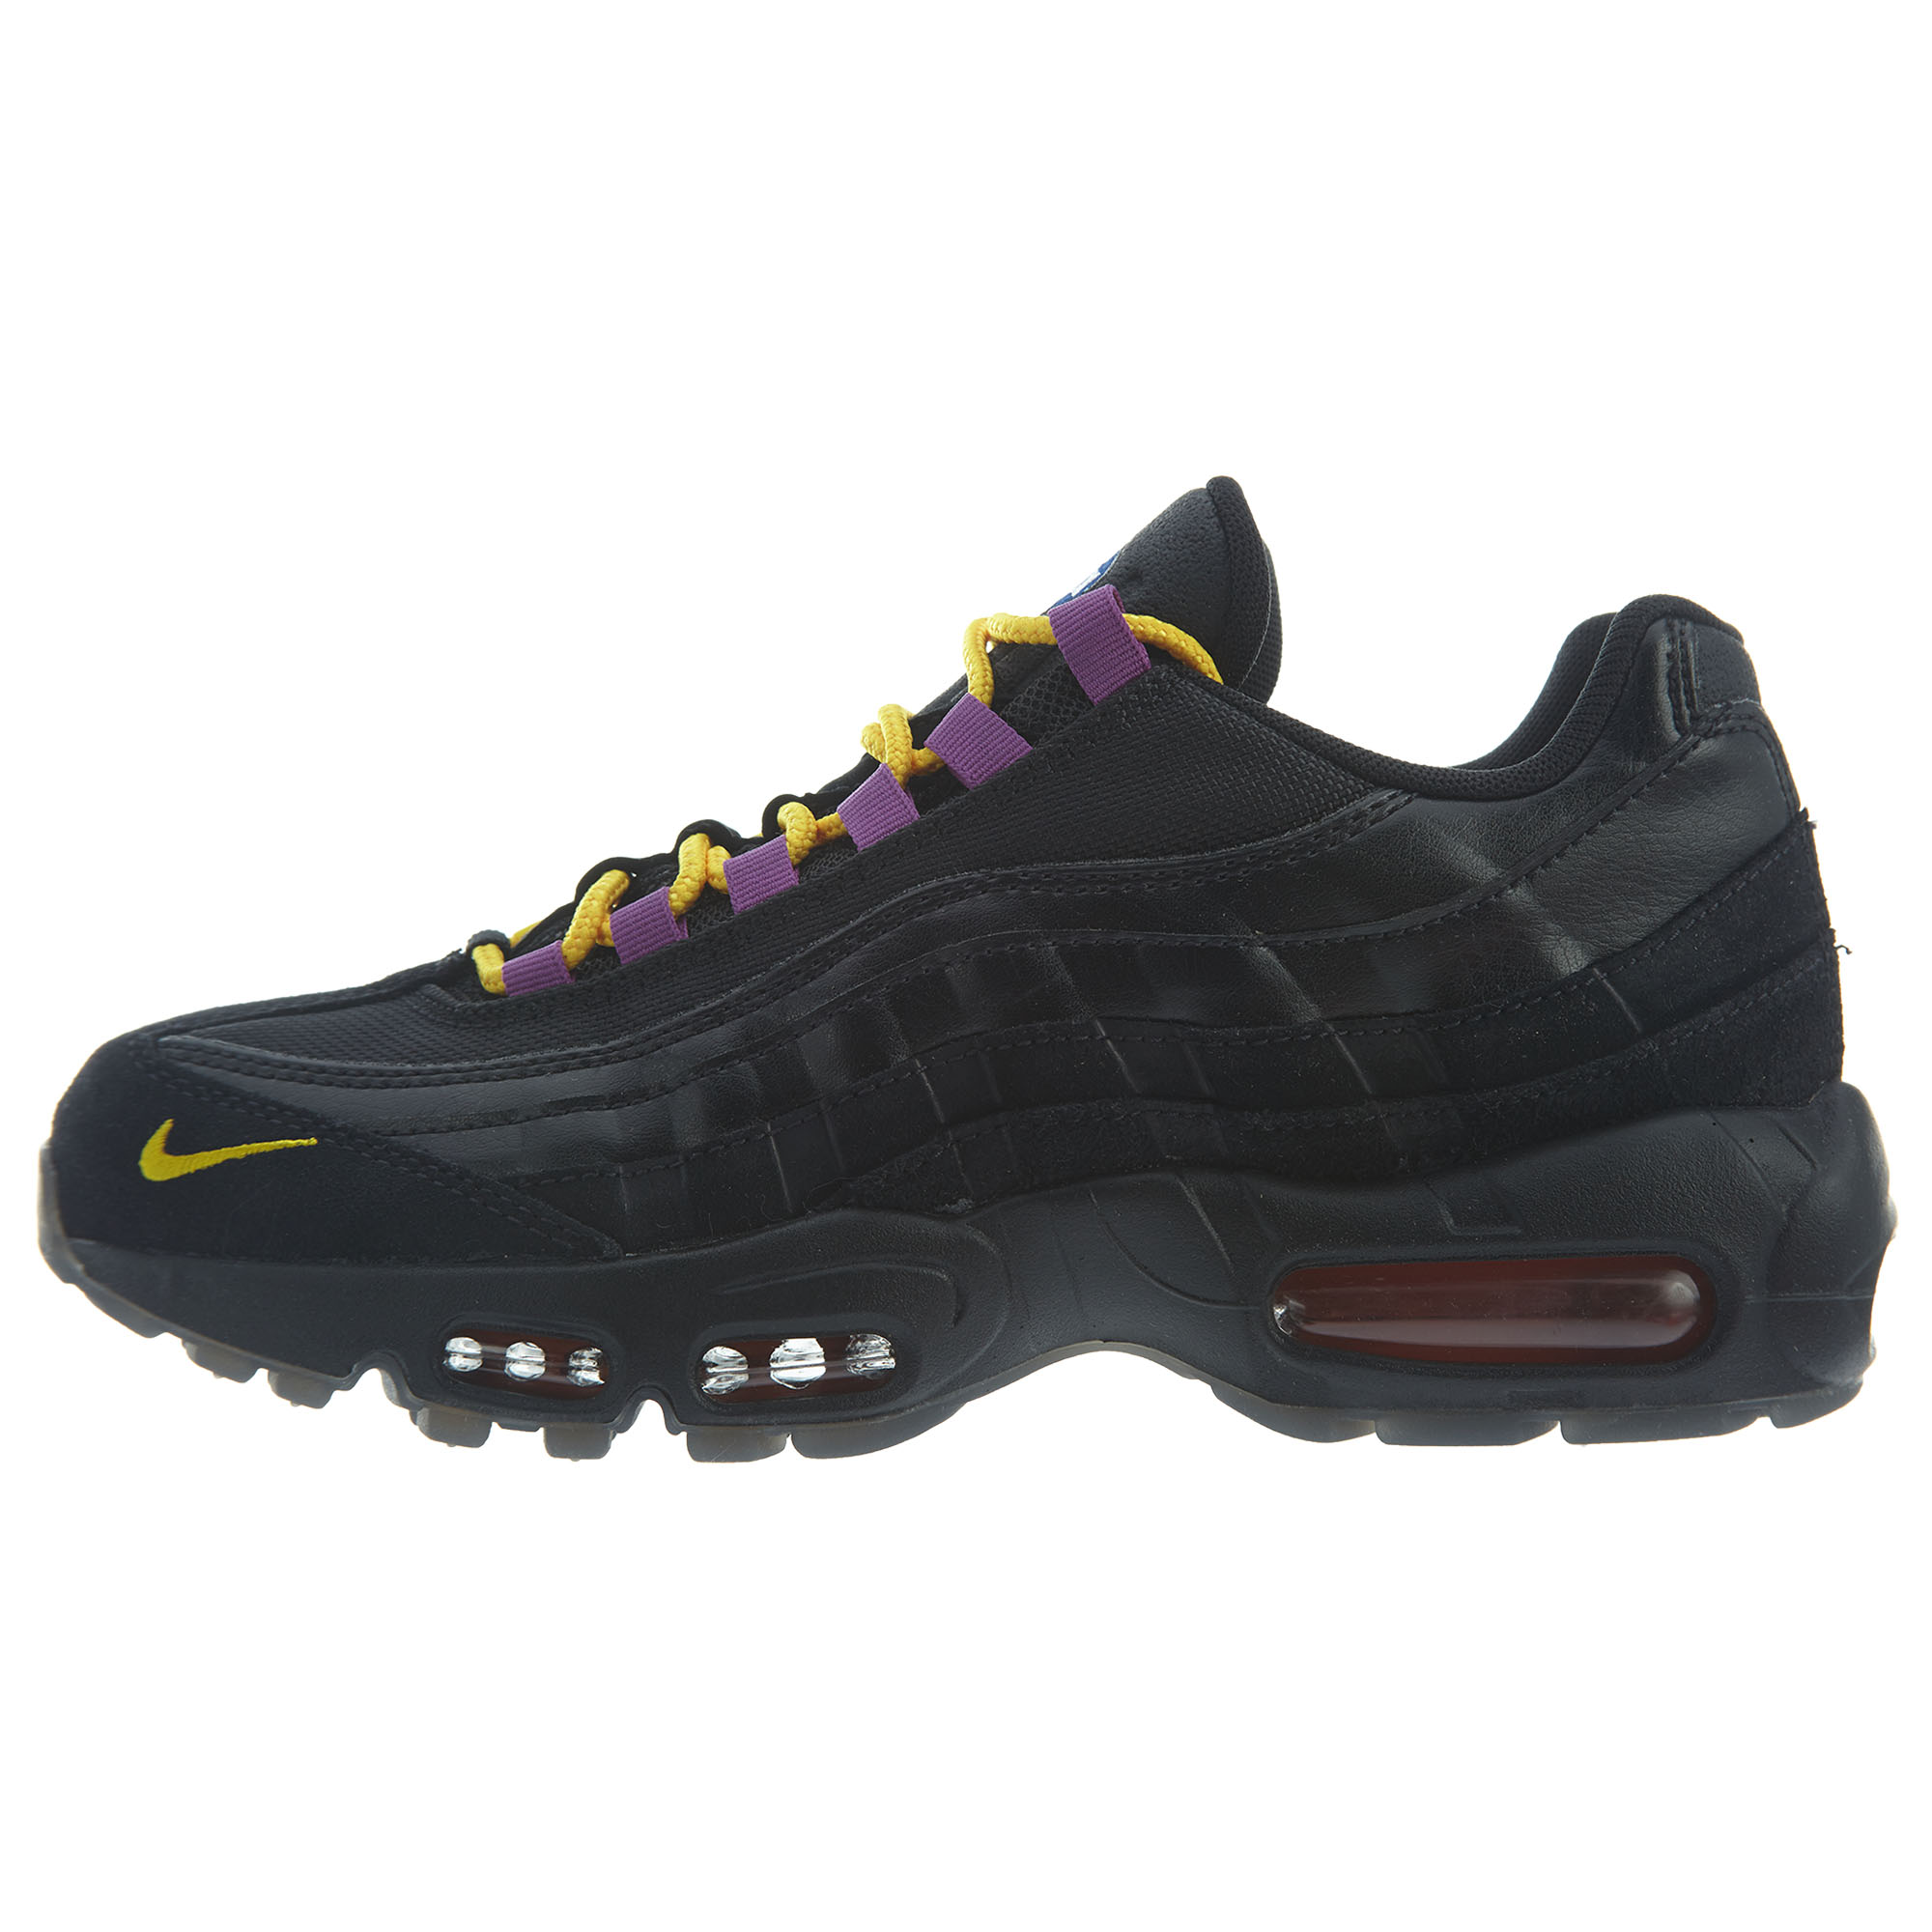 best sneakers b7848 8c355 Details about Nike Mens Air Max 95 LA VS NYC Shoes AT8505-001